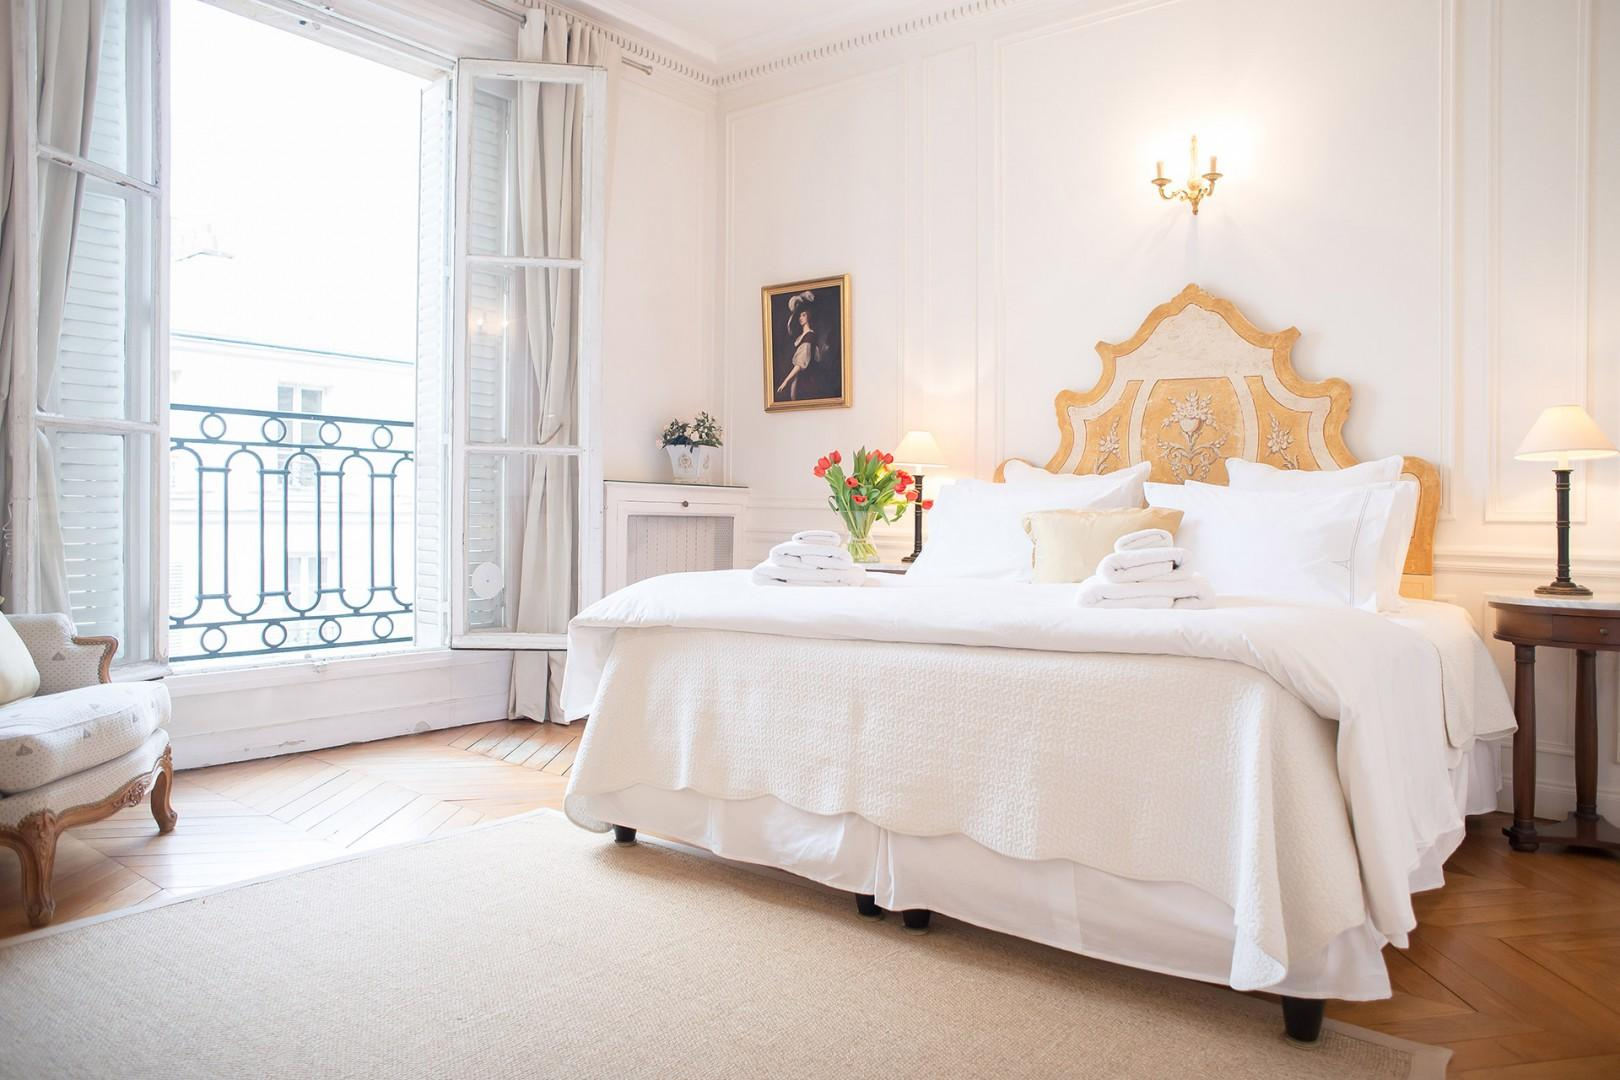 Enter the gracious bedroom 1 with comfortable bed that's fit for royalty.